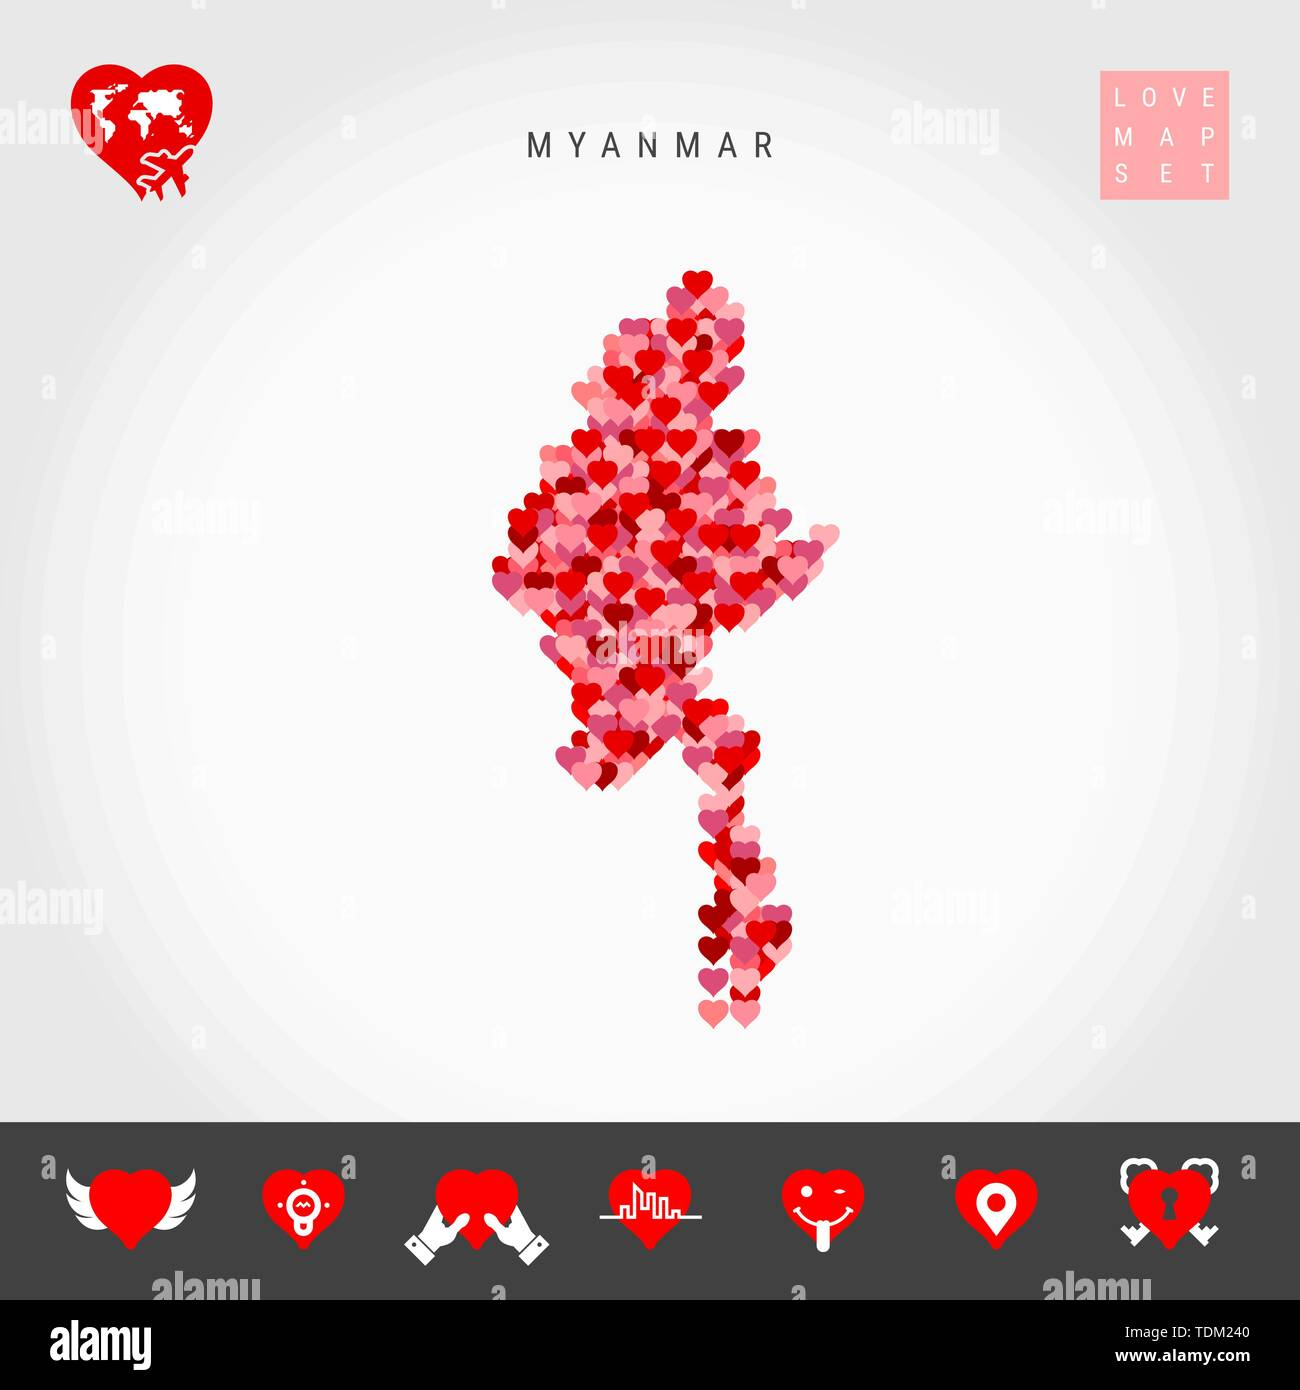 I Love Myanmar. Red and Pink Hearts Pattern Vector Map of Myanmar Isolated on Grey Background. Love Icon Set. - Stock Vector